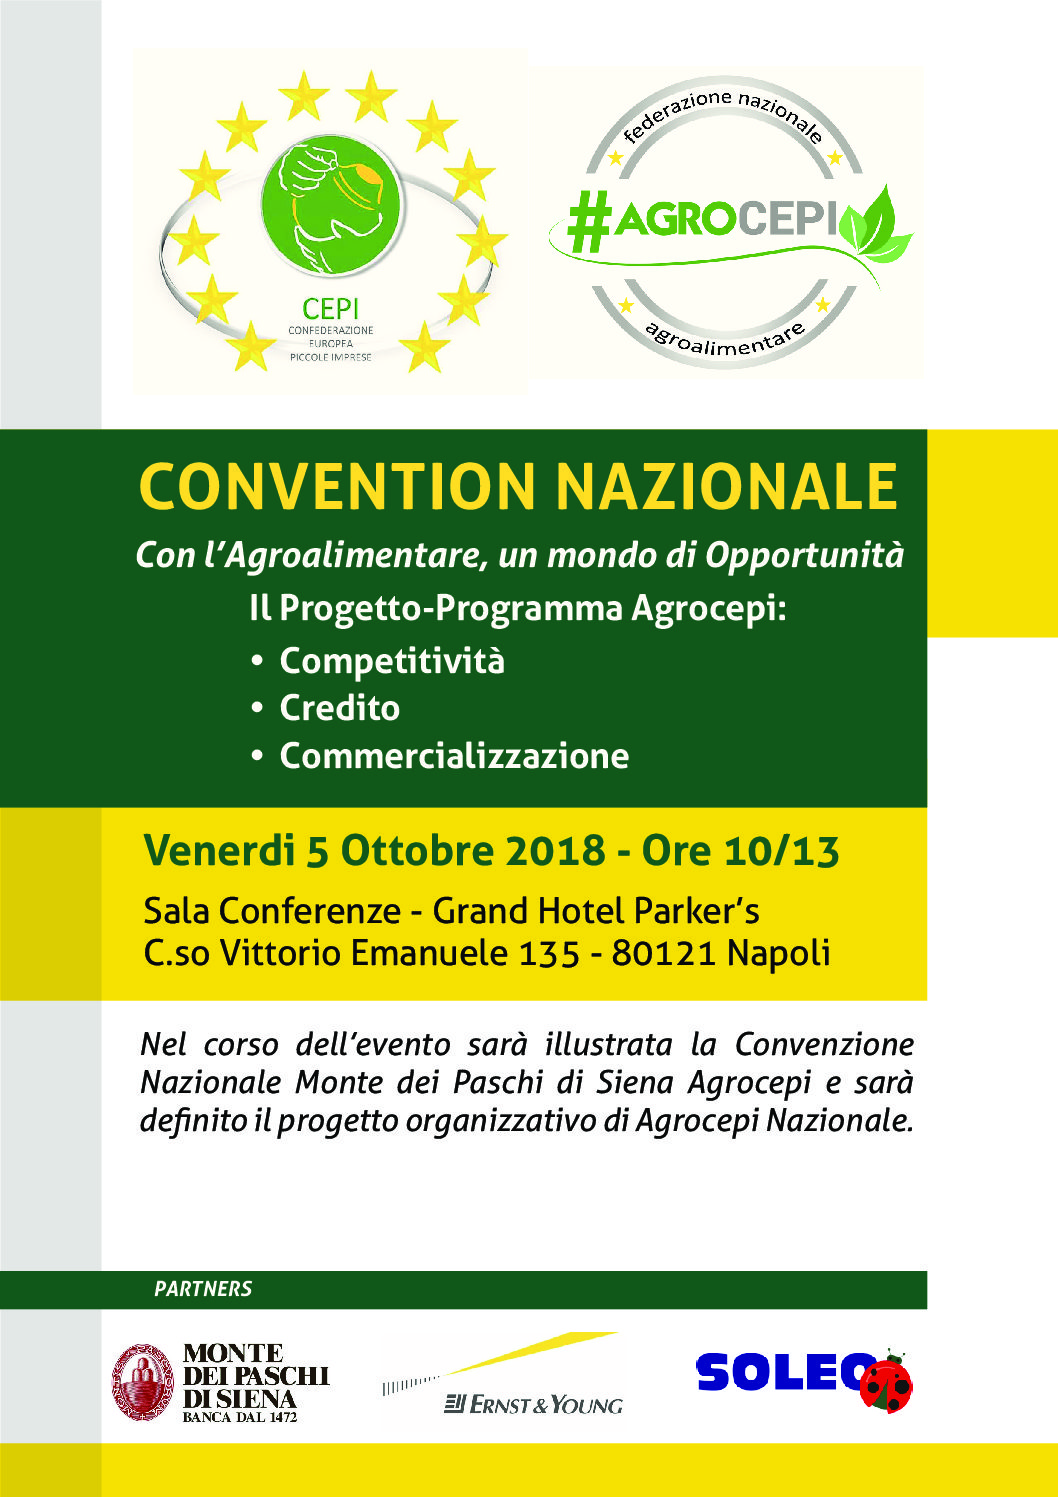 CONVENTION NAZIONALE #AGROCEPI